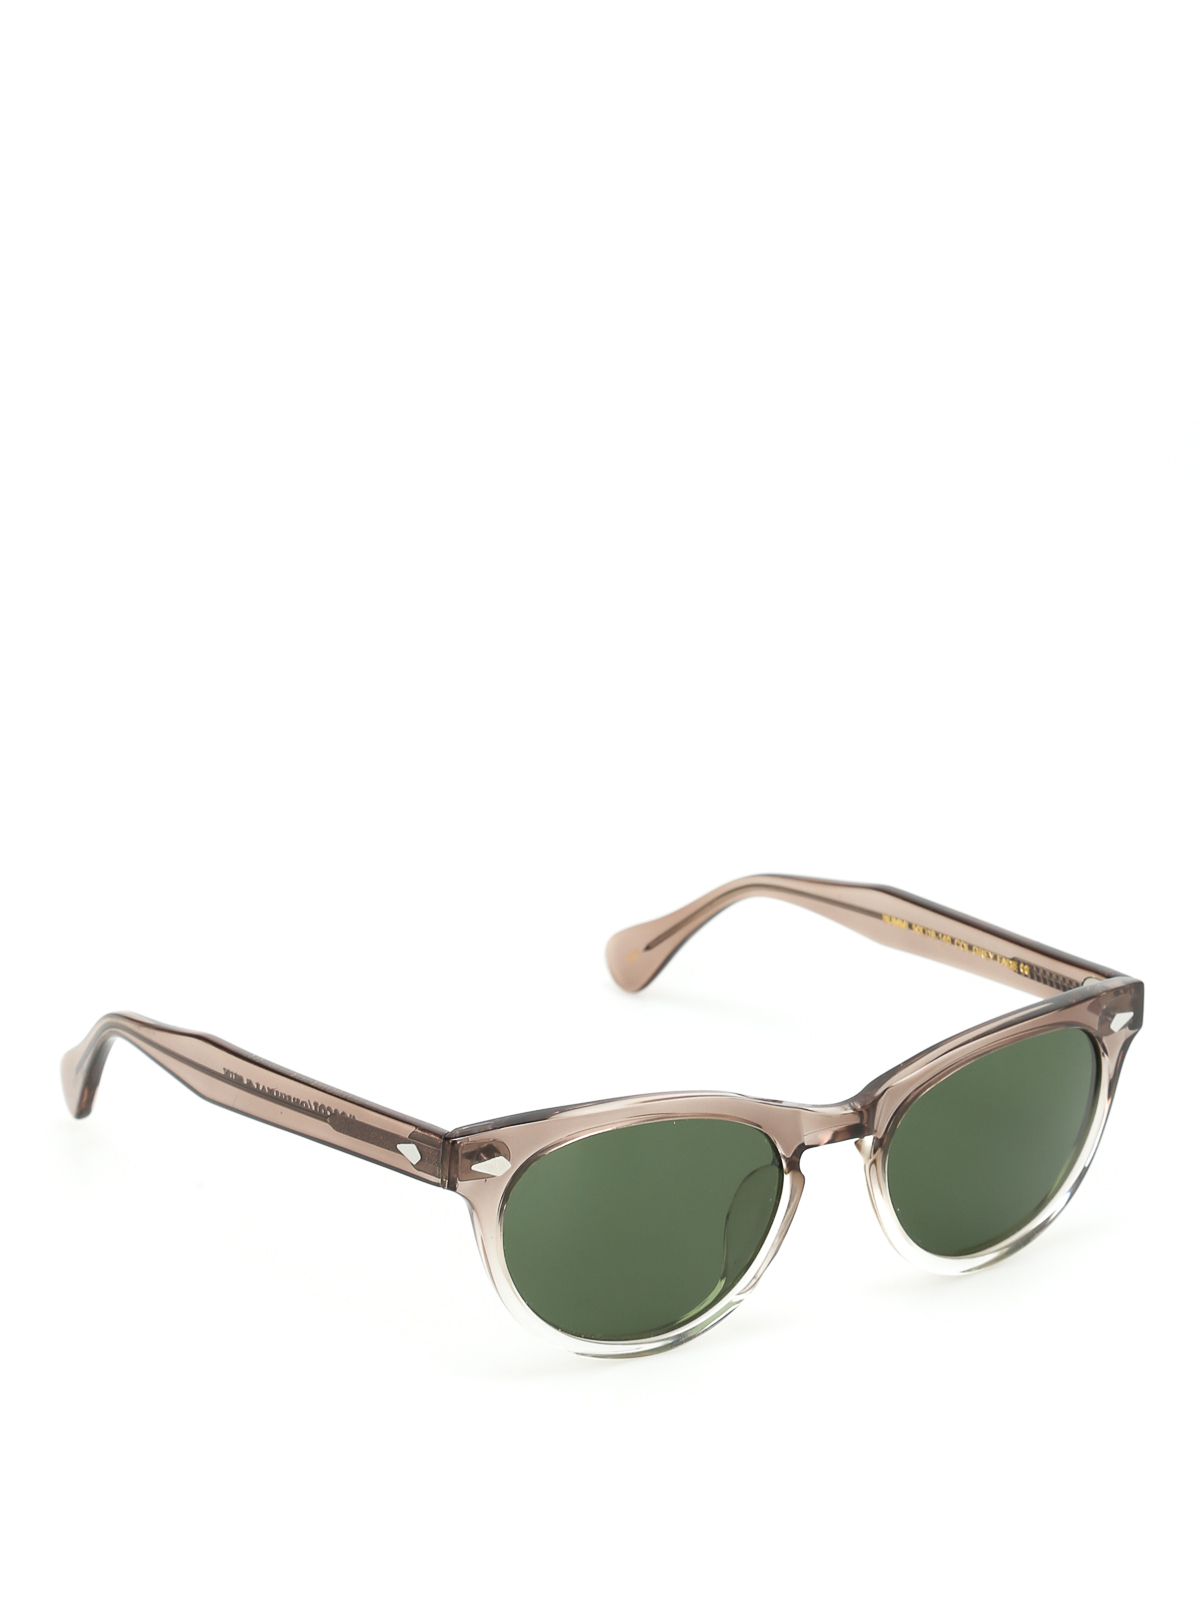 Moscot Coupon go to spendingcritics.ml Total 20 active spendingcritics.ml Promotion Codes & Deals are listed and the latest one is updated on October 21, ; 15 coupons and 5 deals which offer up to 10% Off, Free Shipping and extra discount, make sure to use one of them when you're shopping for spendingcritics.ml; Dealscove promise you'll get the best price on.